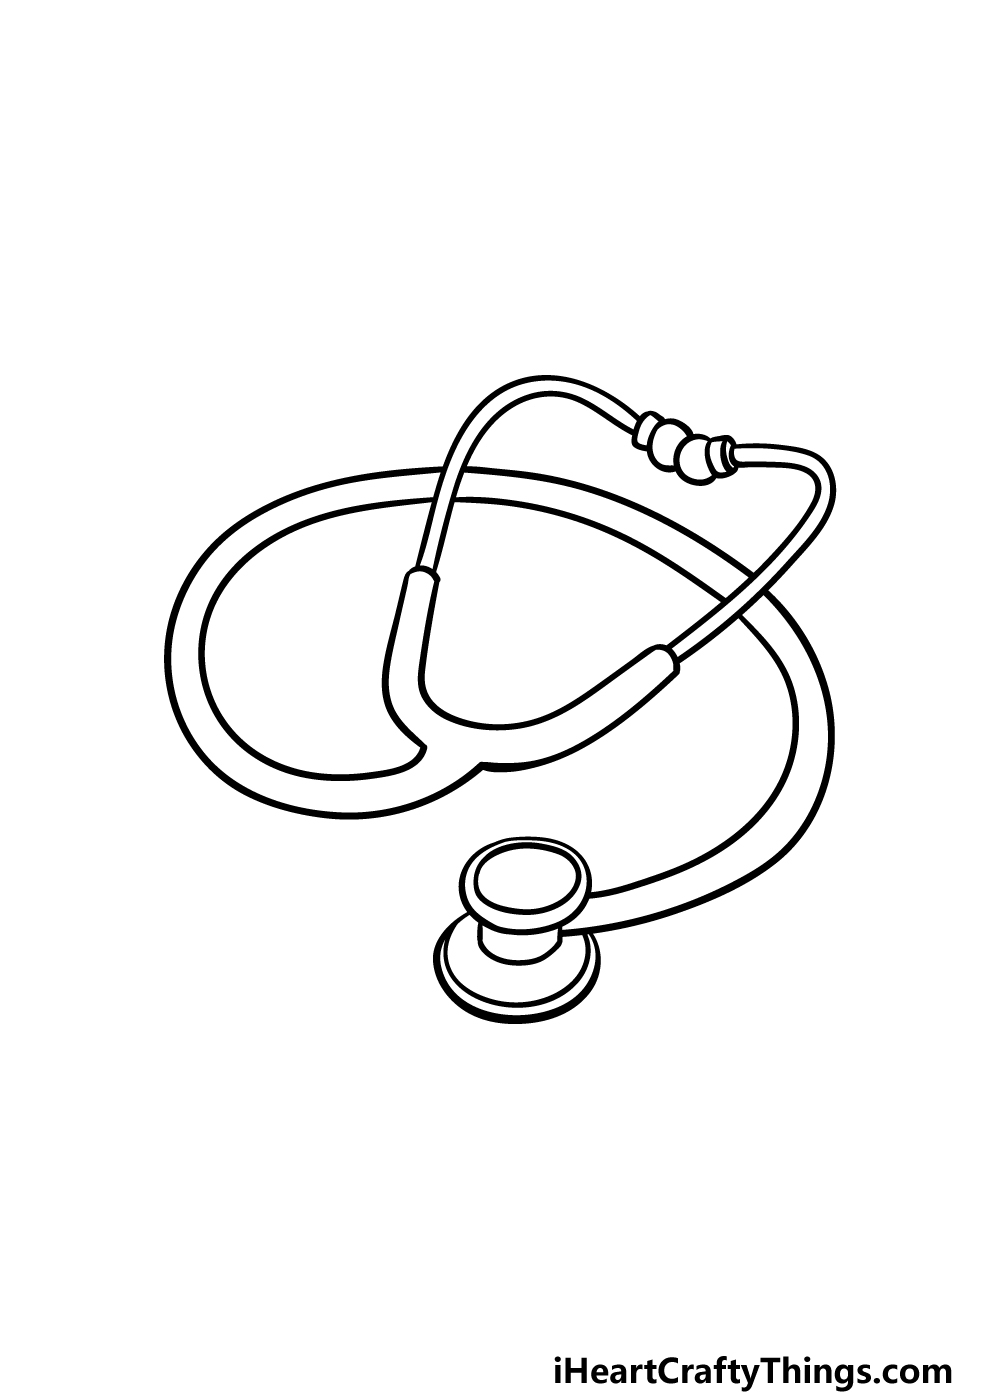 drawing stethoscope step 5